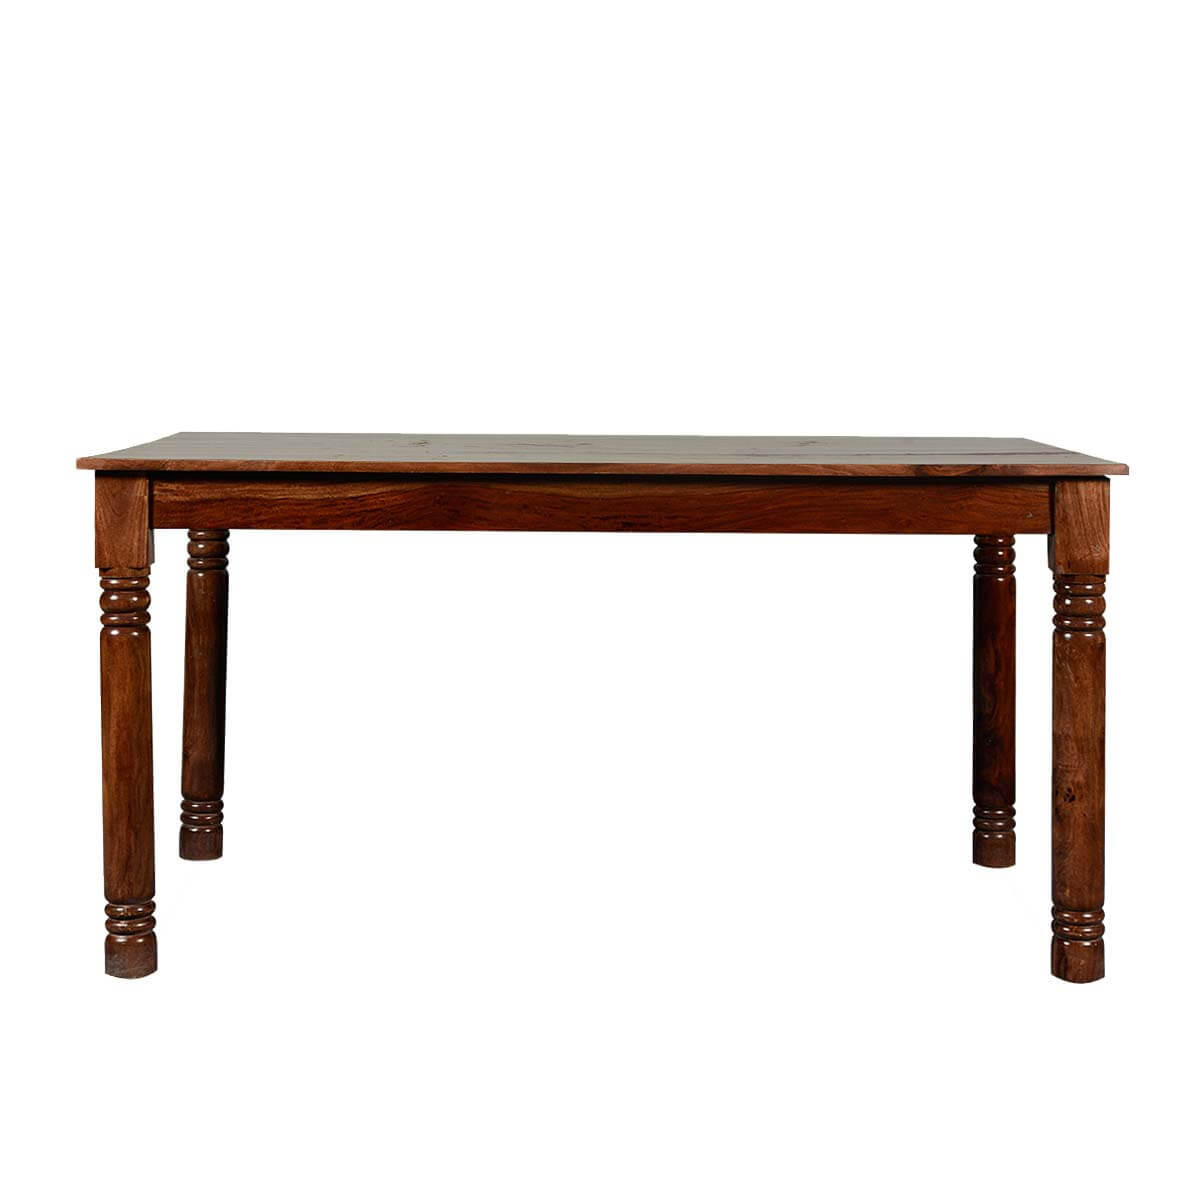 Simply elegant farmhouse solid wood 58 dining table for Solid wood farm table